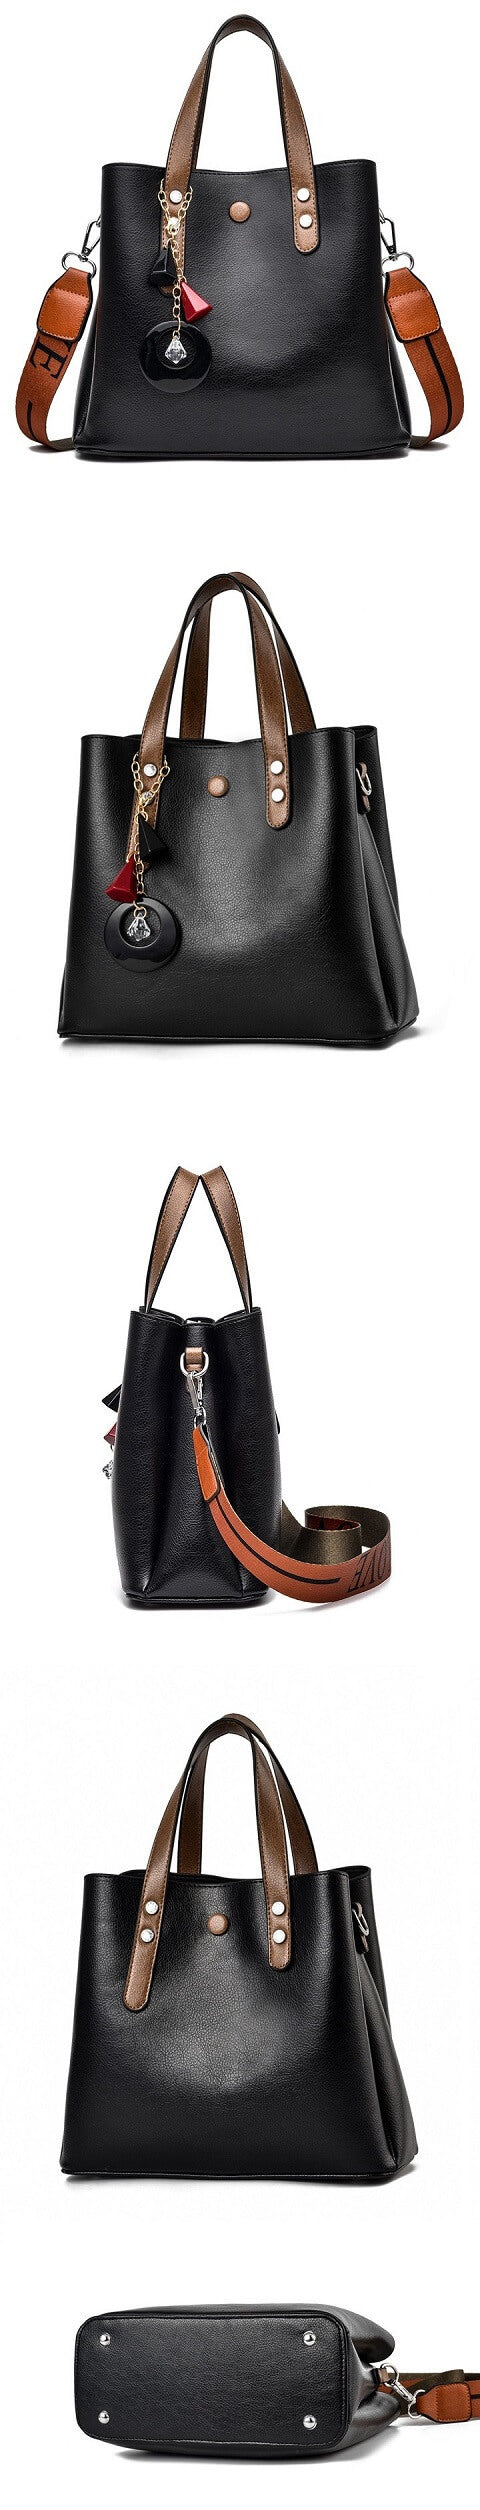 Valerie Gillespie handbag can be transformed from a crossbody bag to a top-handle bag and bucket bag to suit your ensembles.